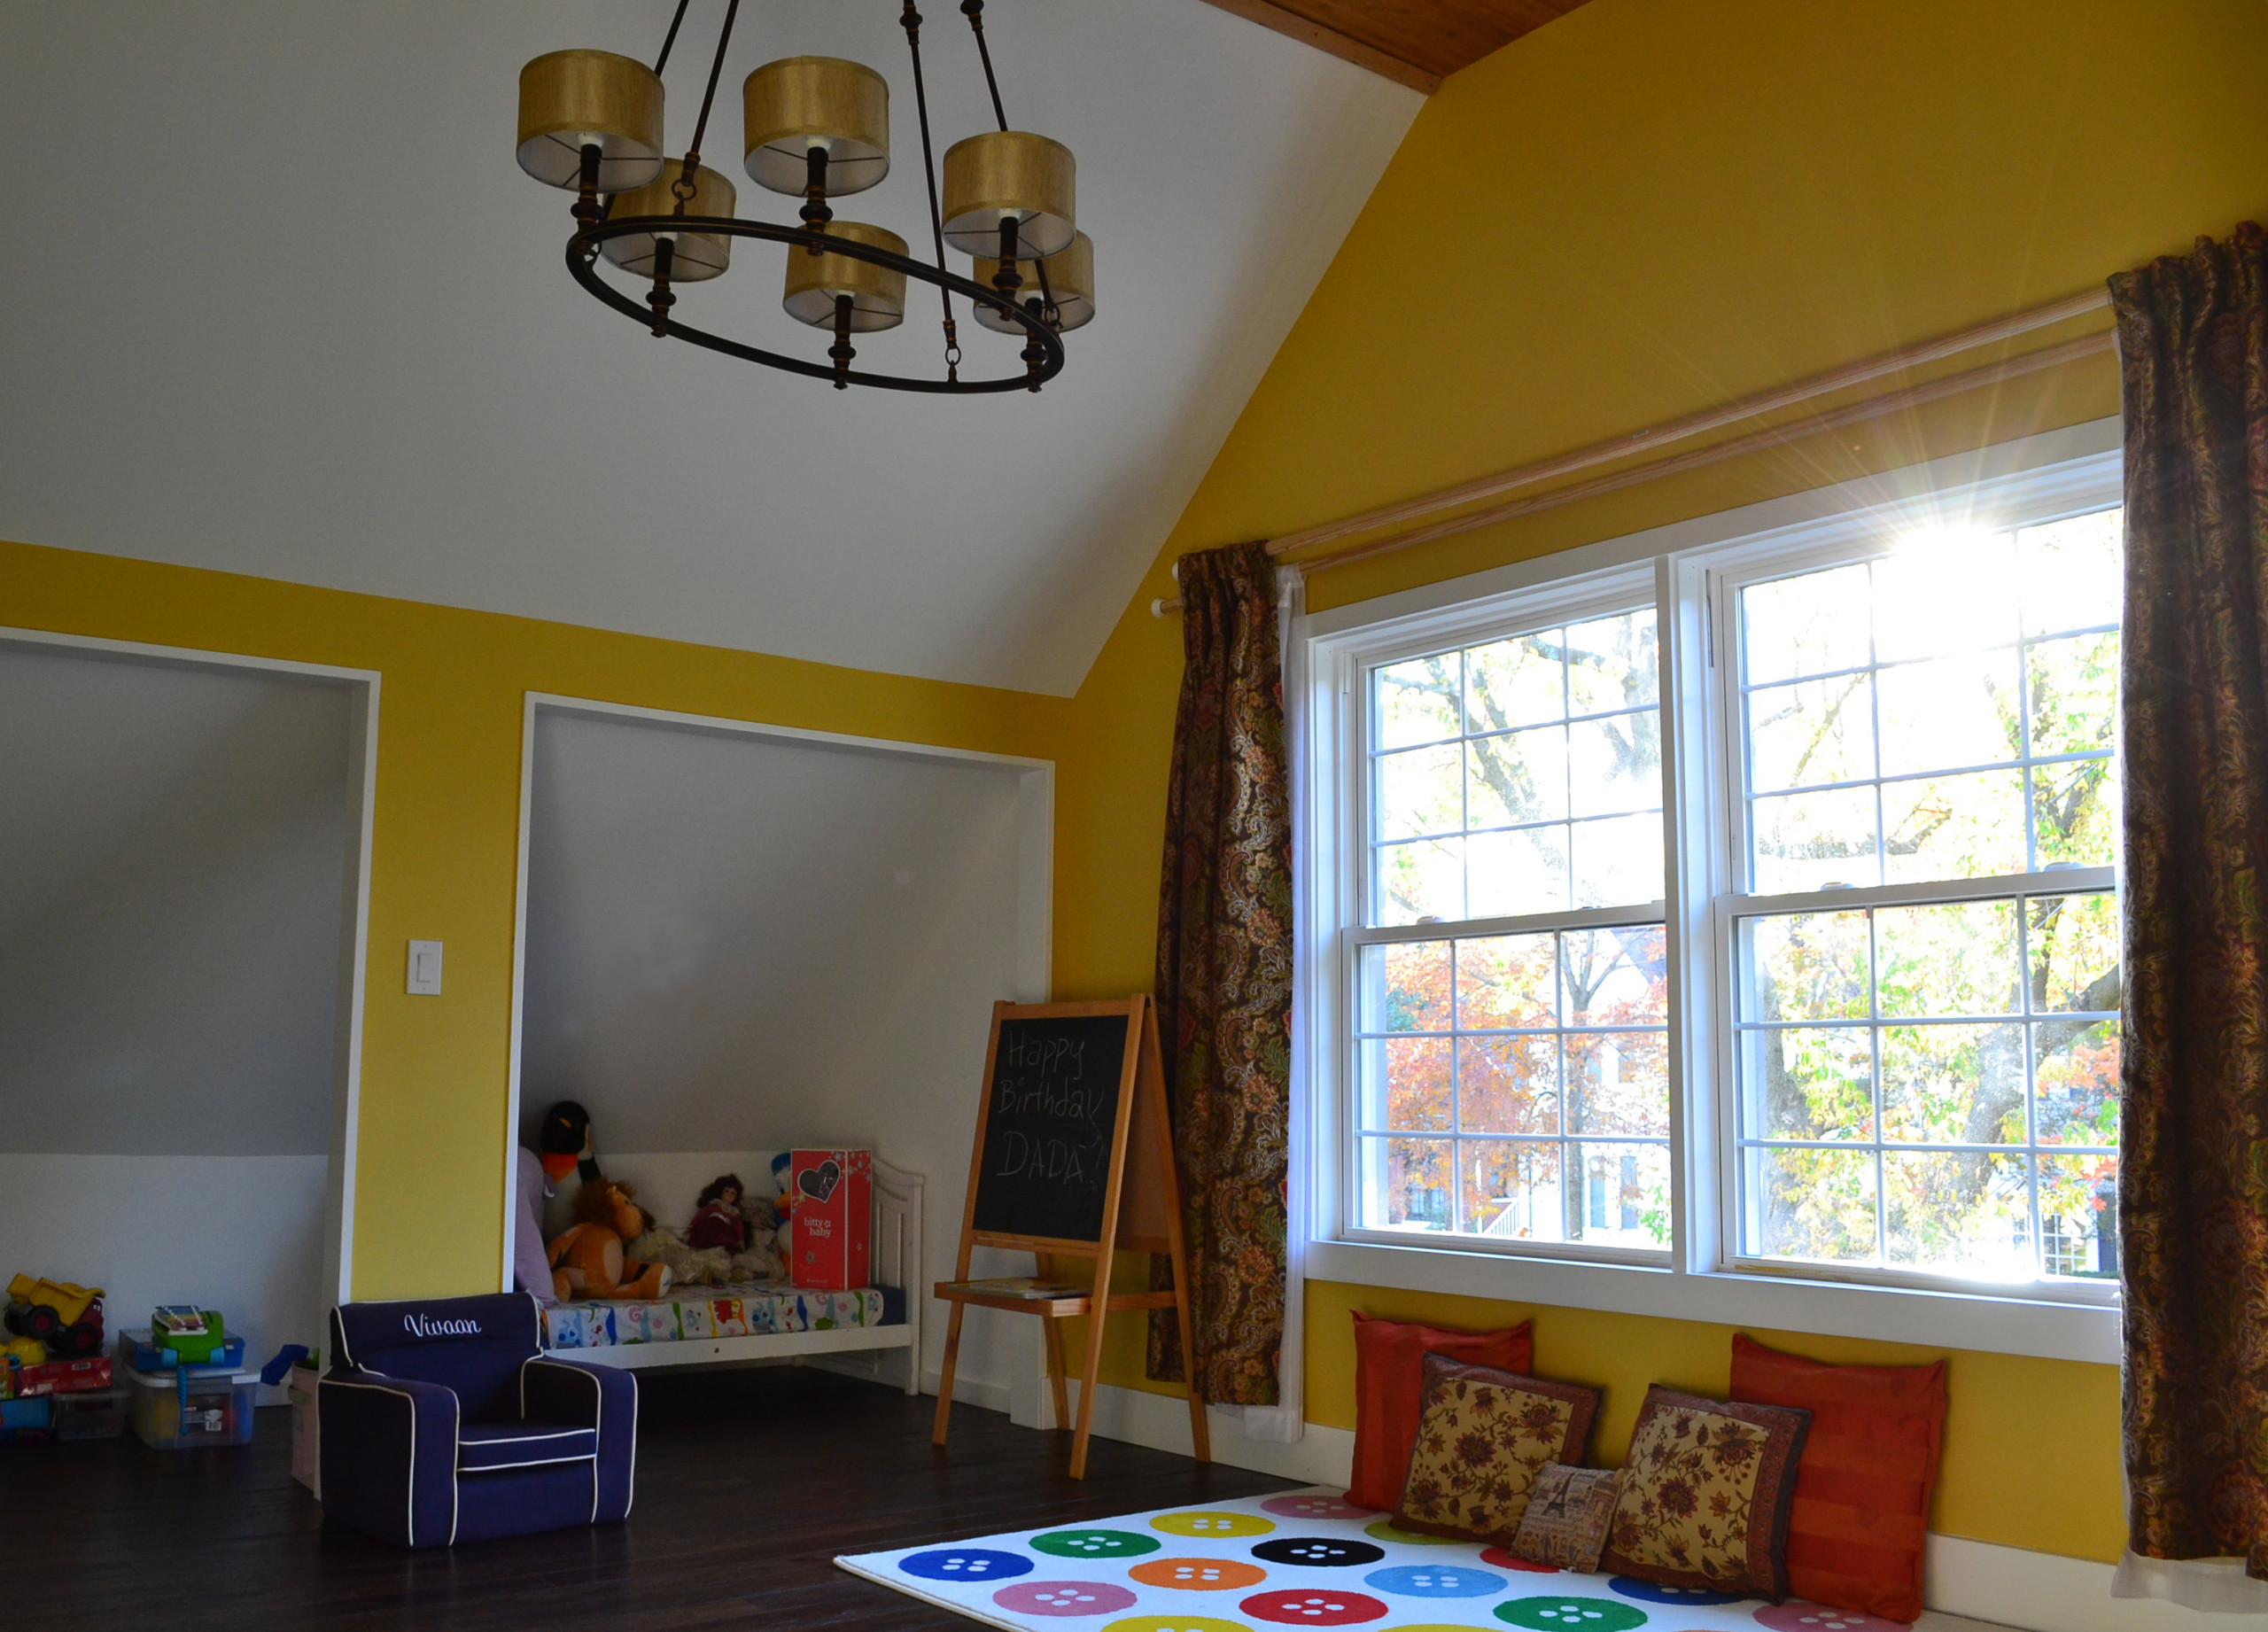 Whole house remodeling and addition - 2nd Floor Playroom